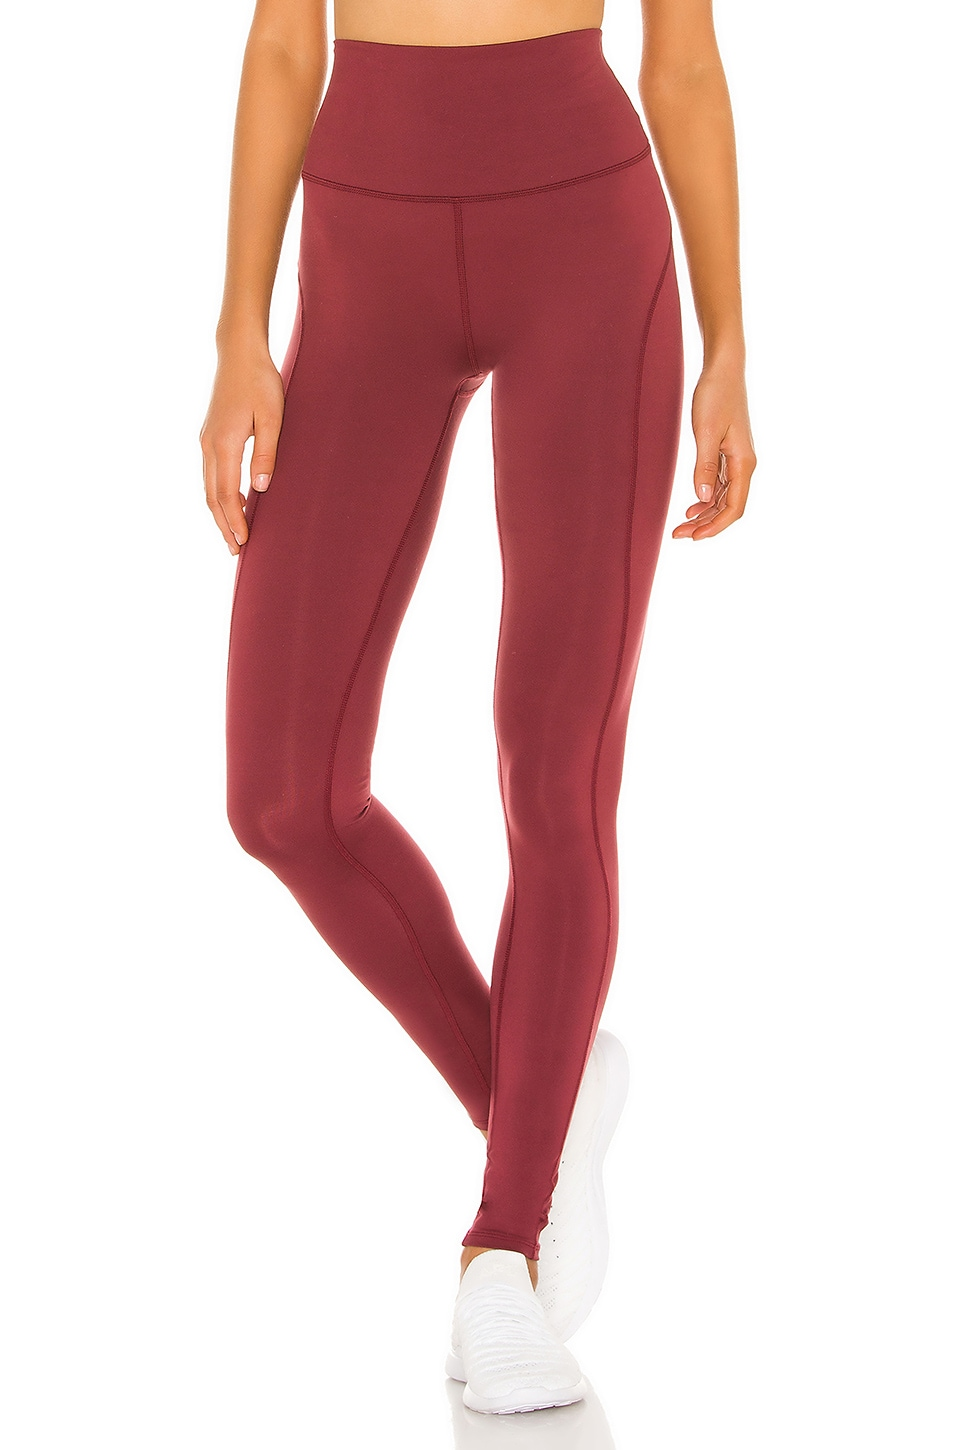 Free People X FP Movement Good Times Legging in Wine